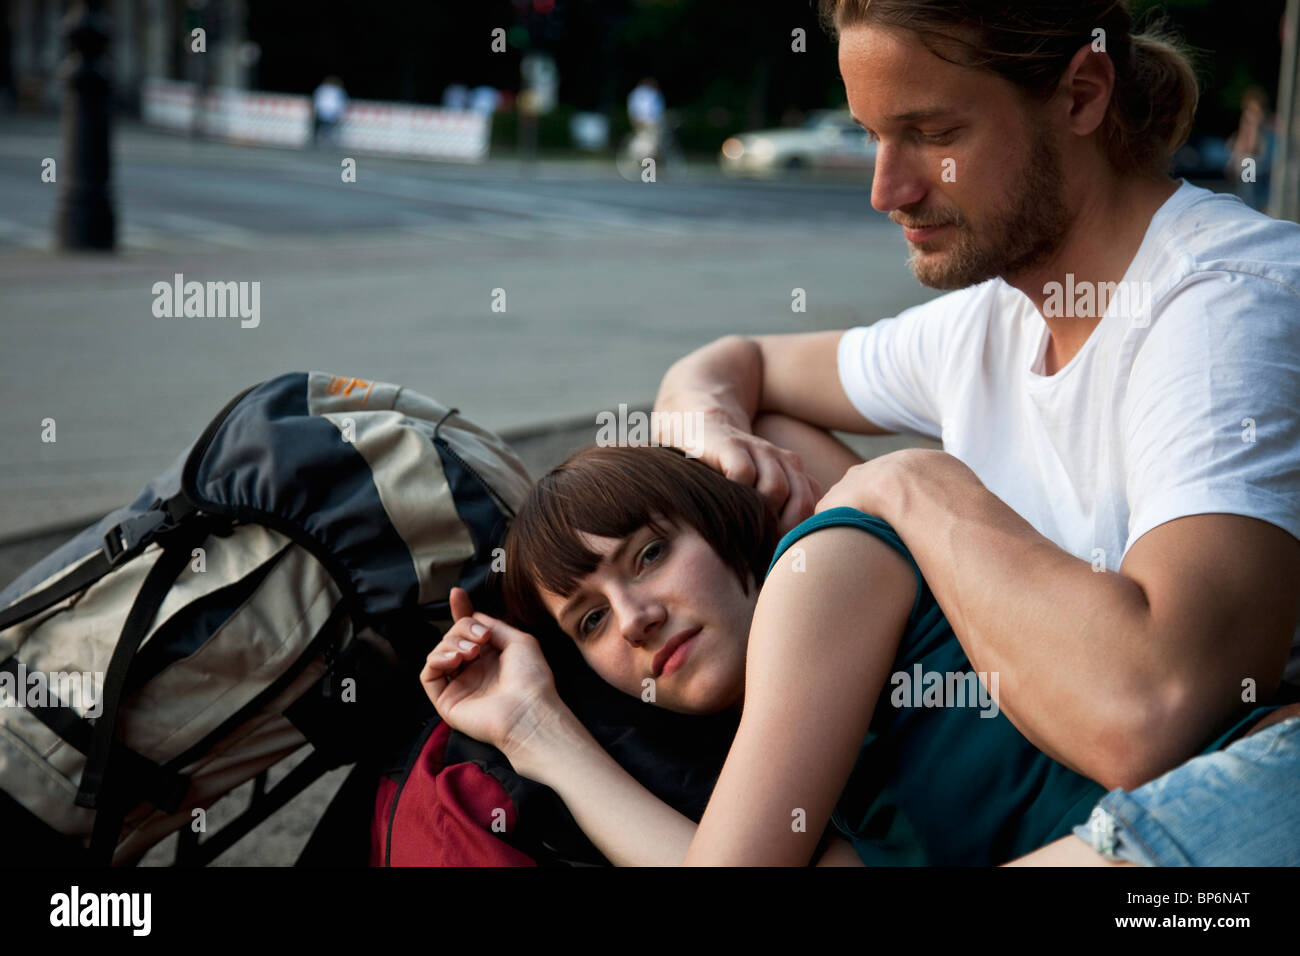 A young backpacker couple resting - Stock Image